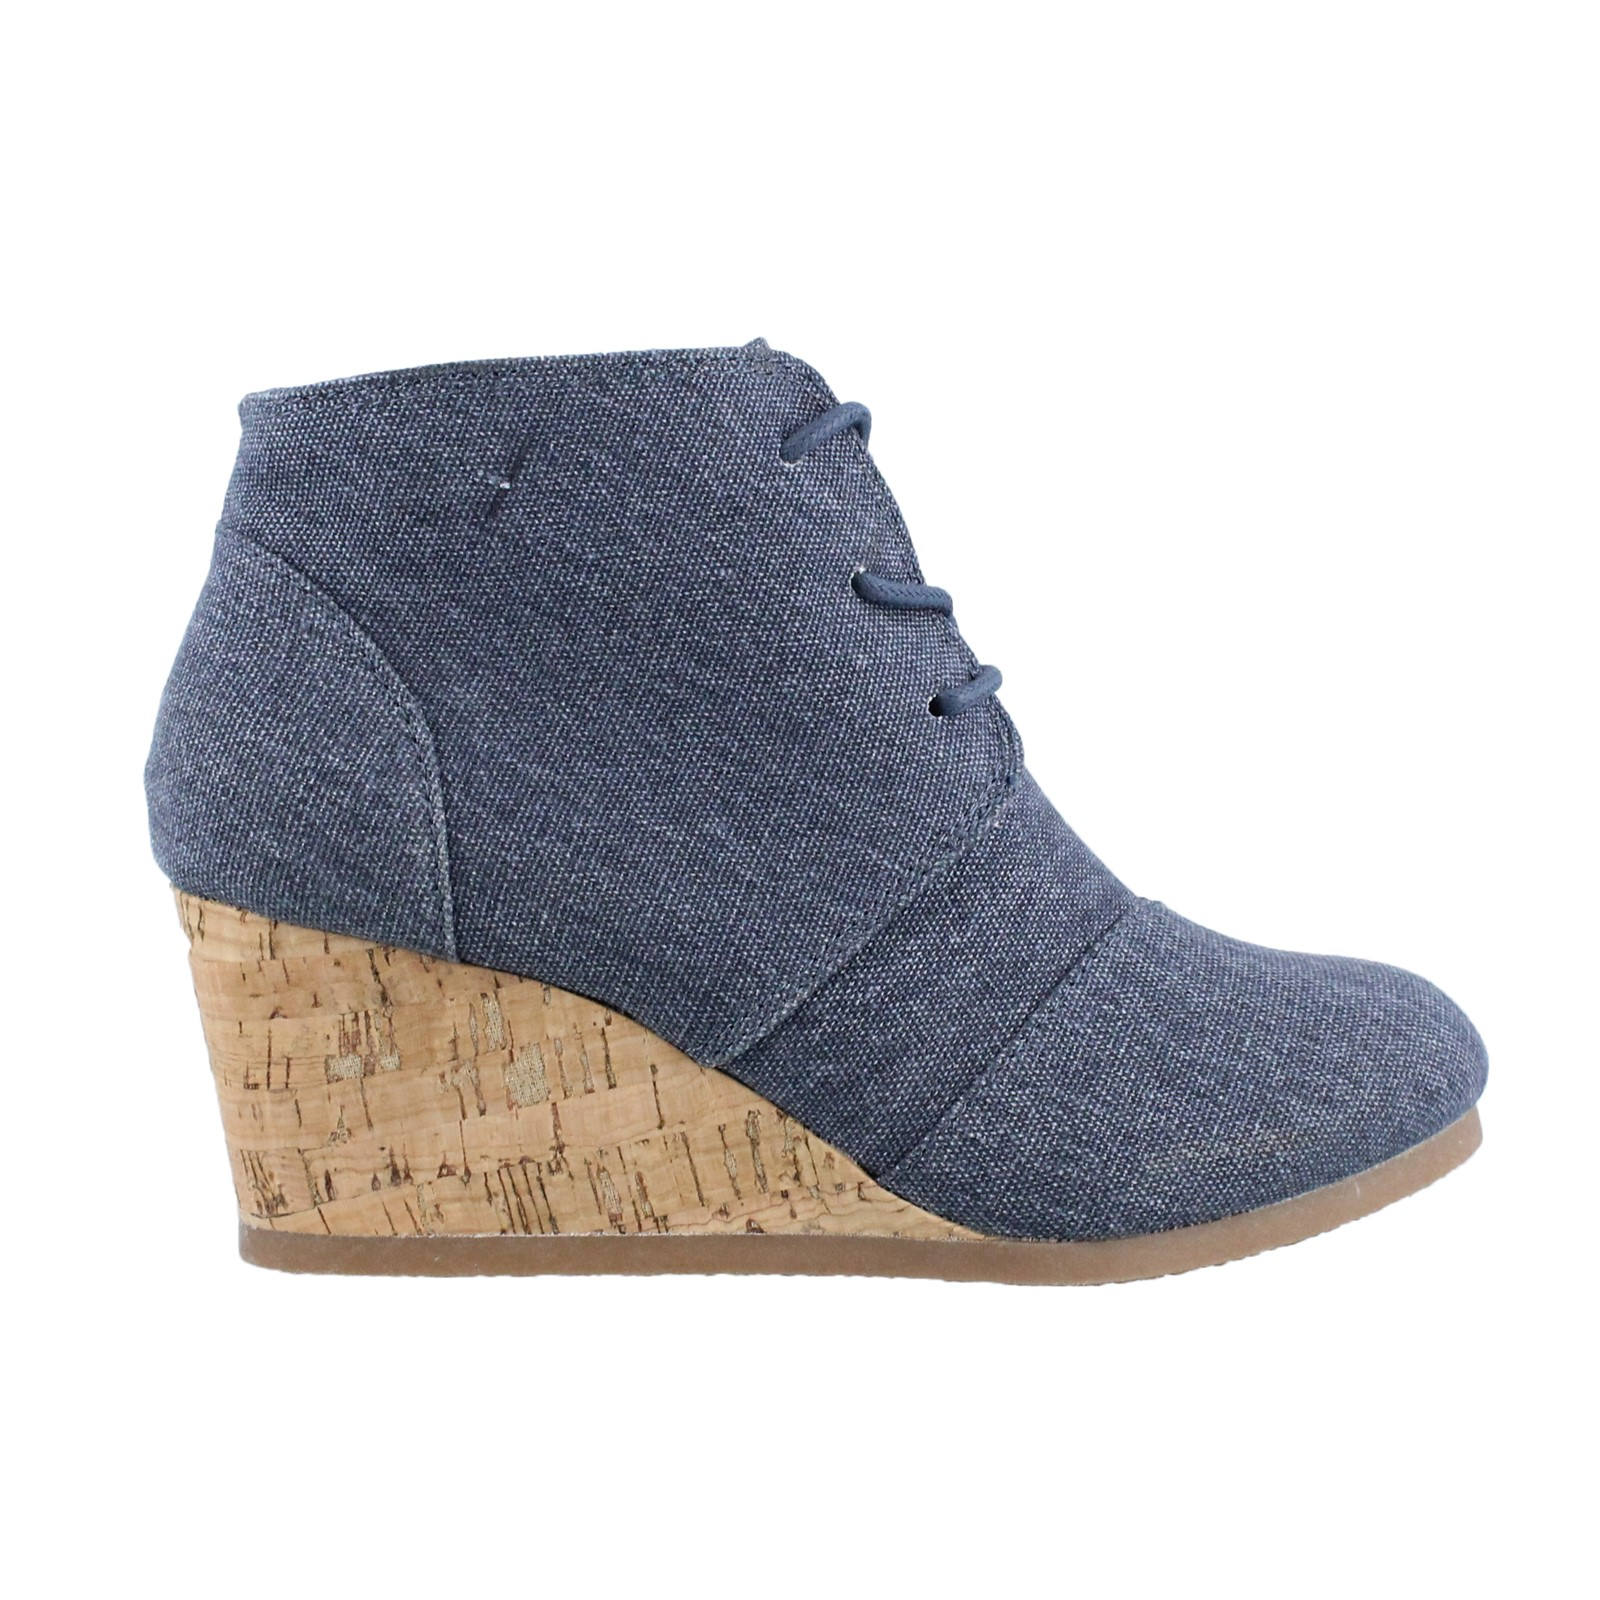 Women's Sugar by Rampage, Maybee Ankle Boots